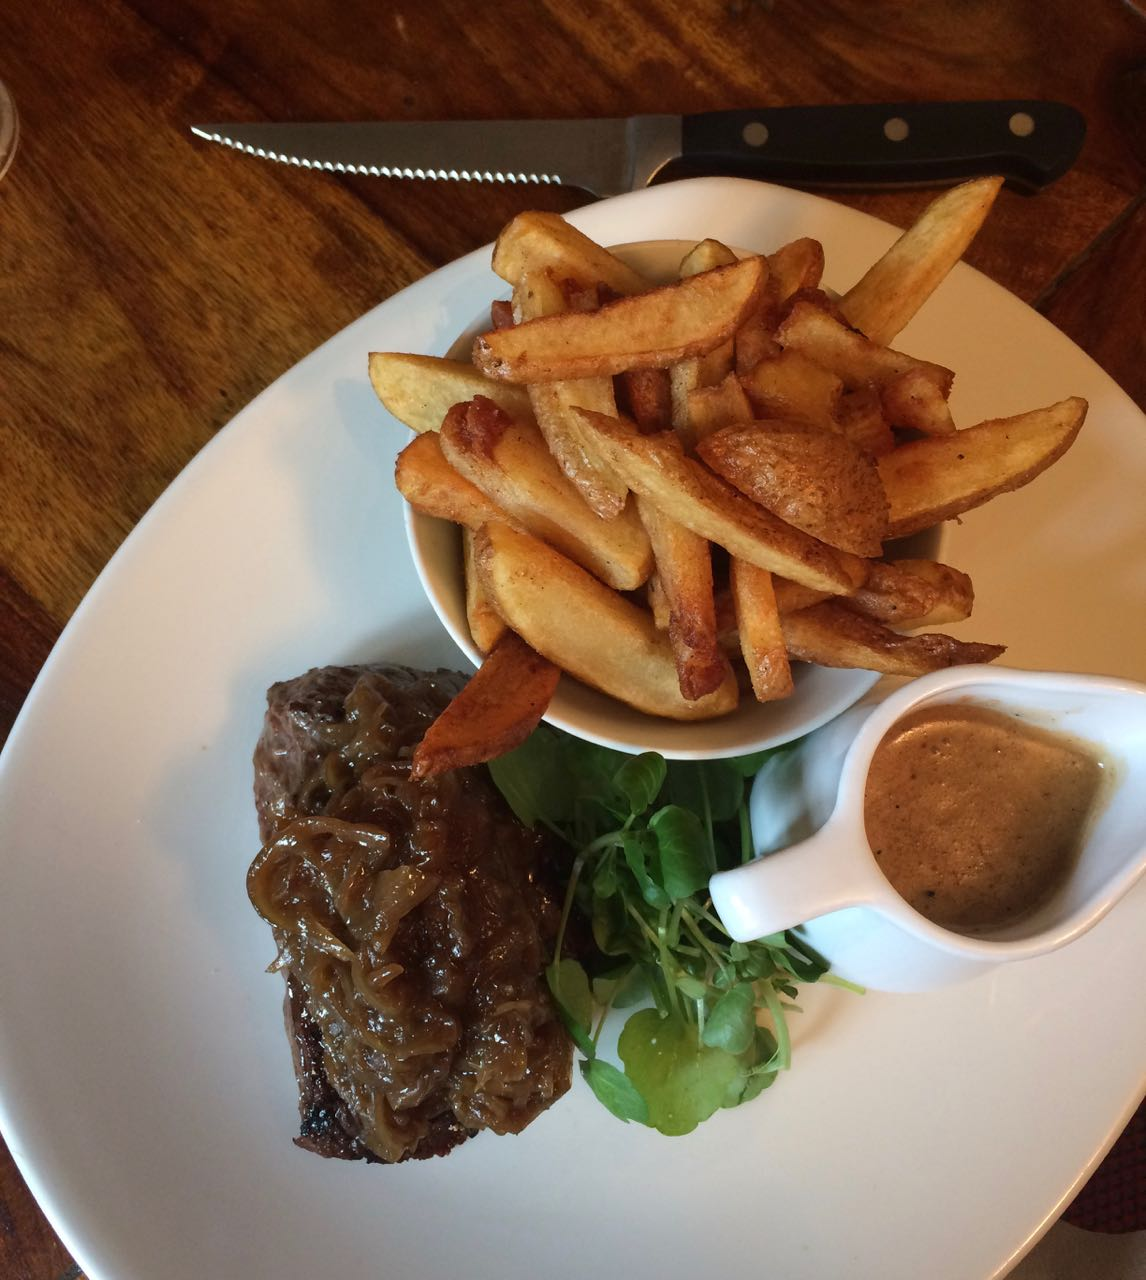 Bavette steak with a great sauce